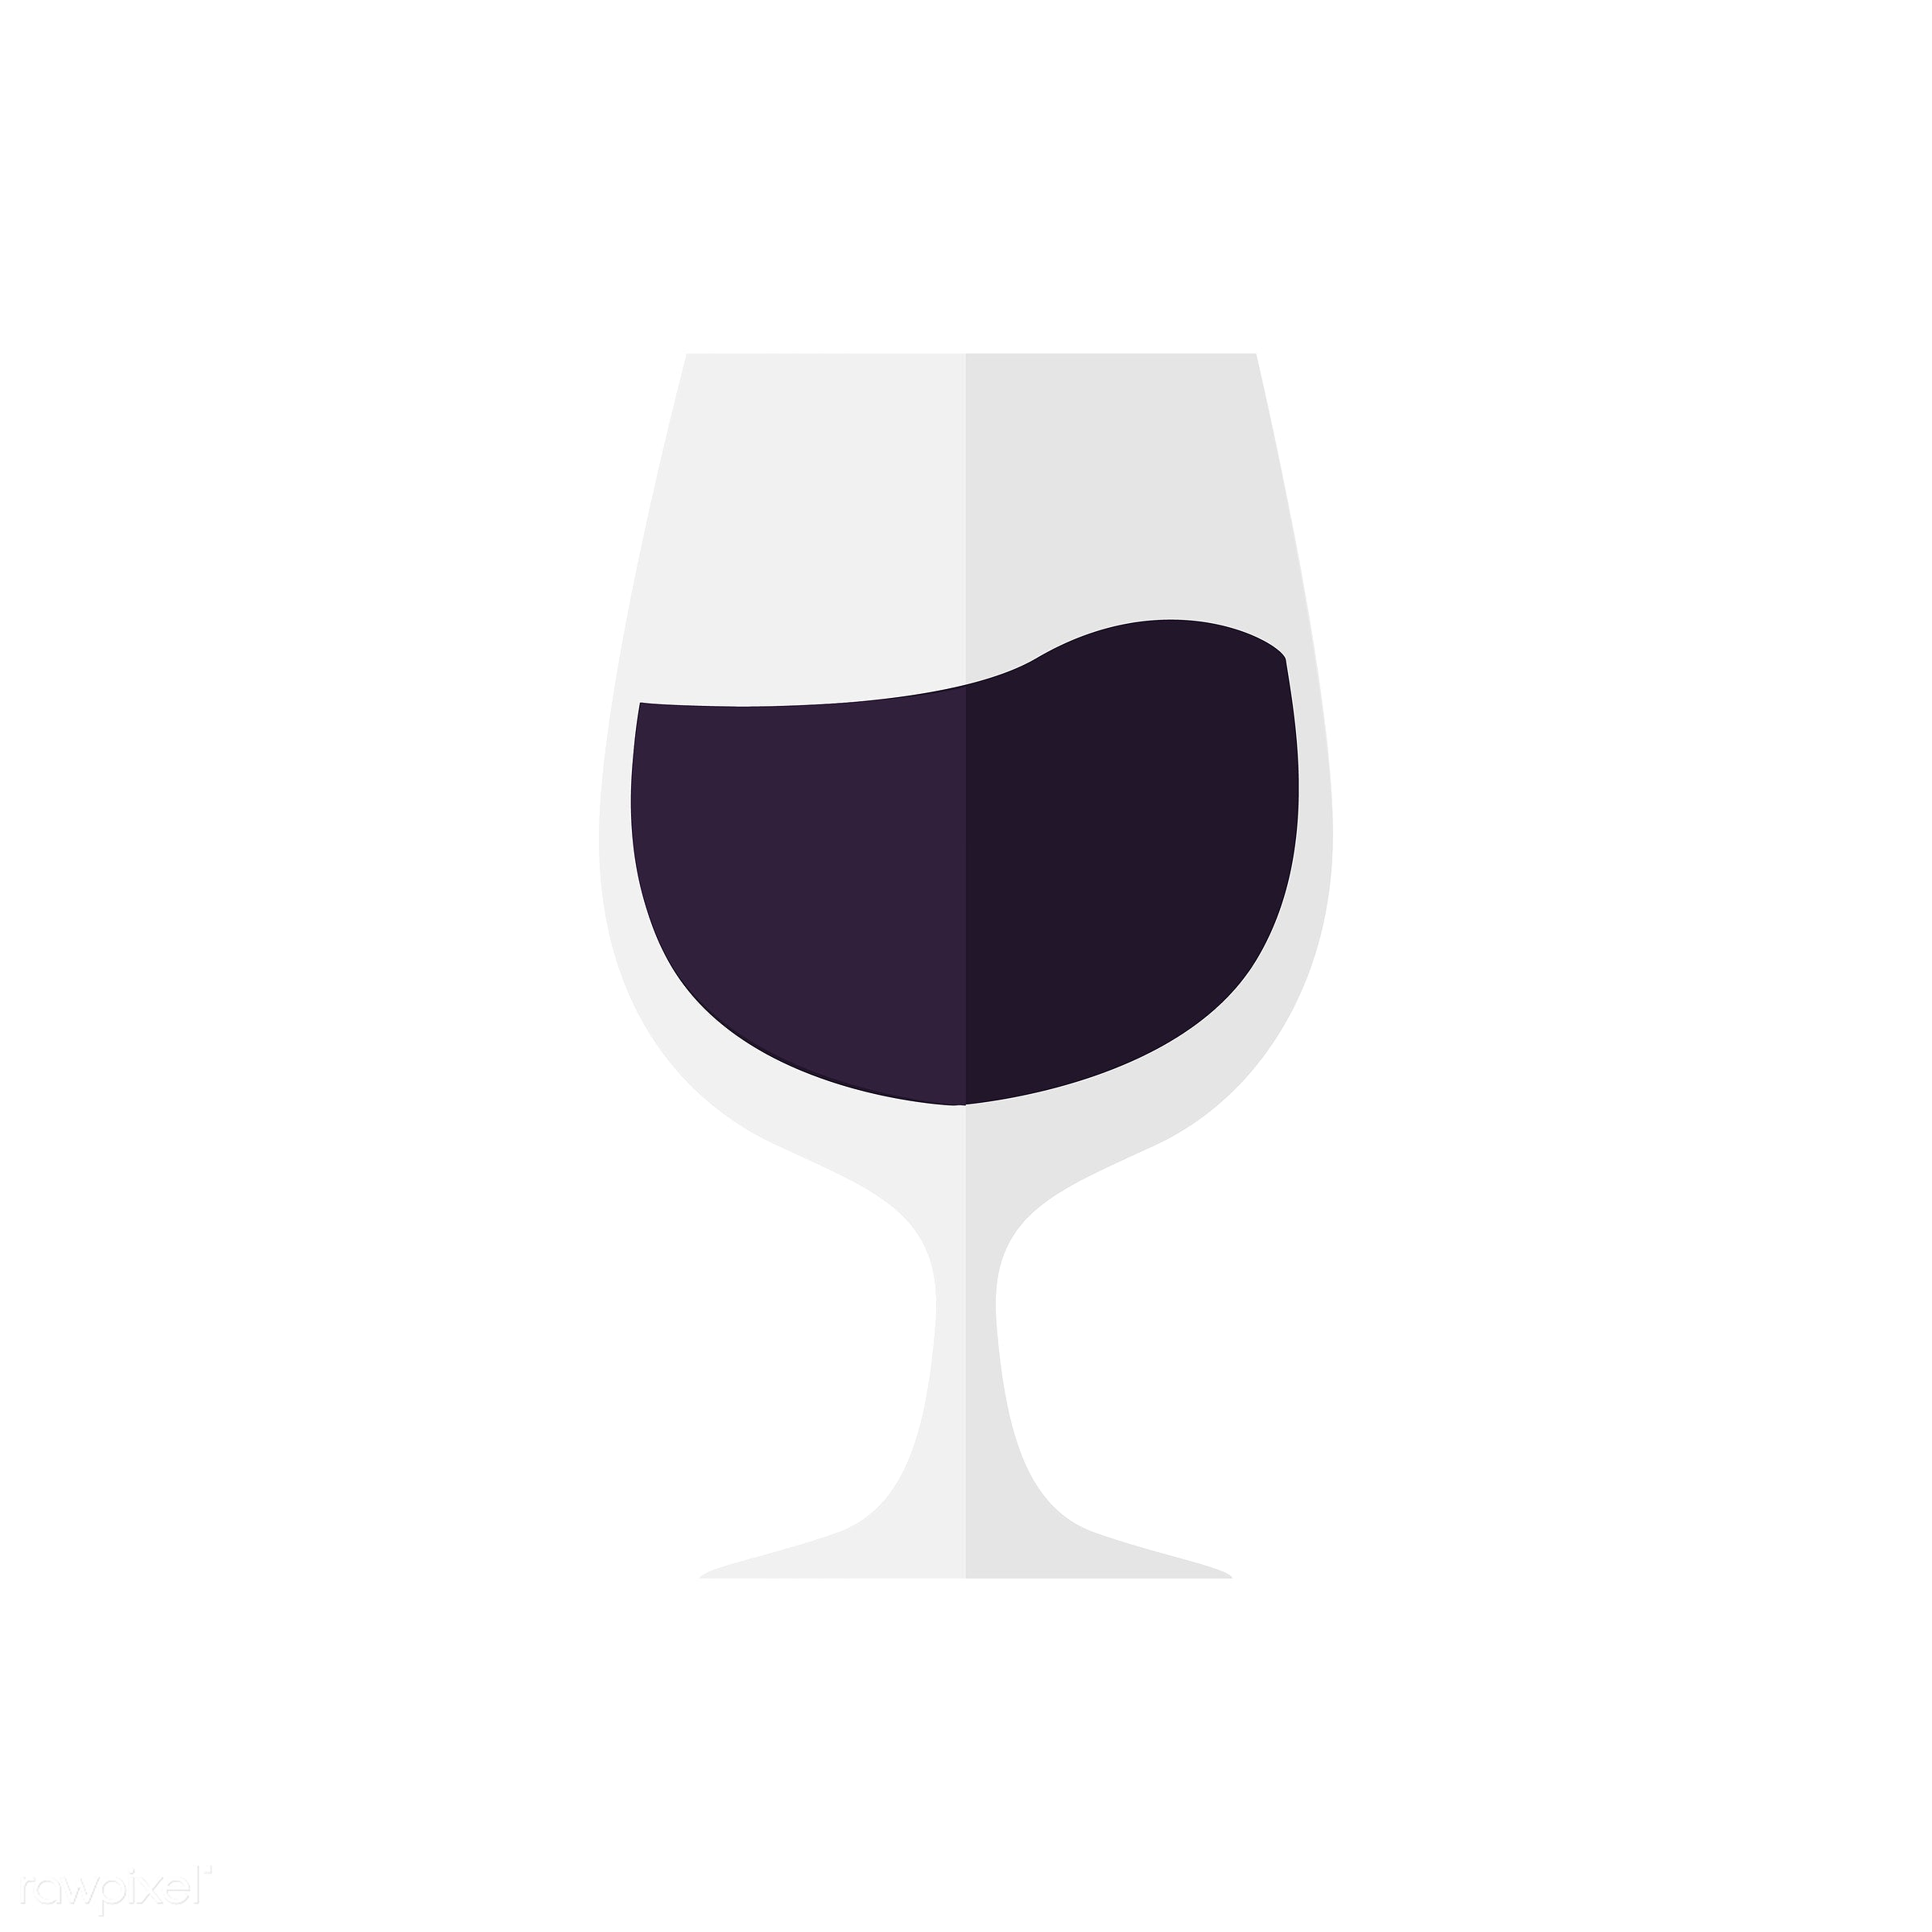 Glass of a dark drink vector - vector, graphic, illustration, icon, symbol, colorful, cute, drink, beverage, water, red wine...